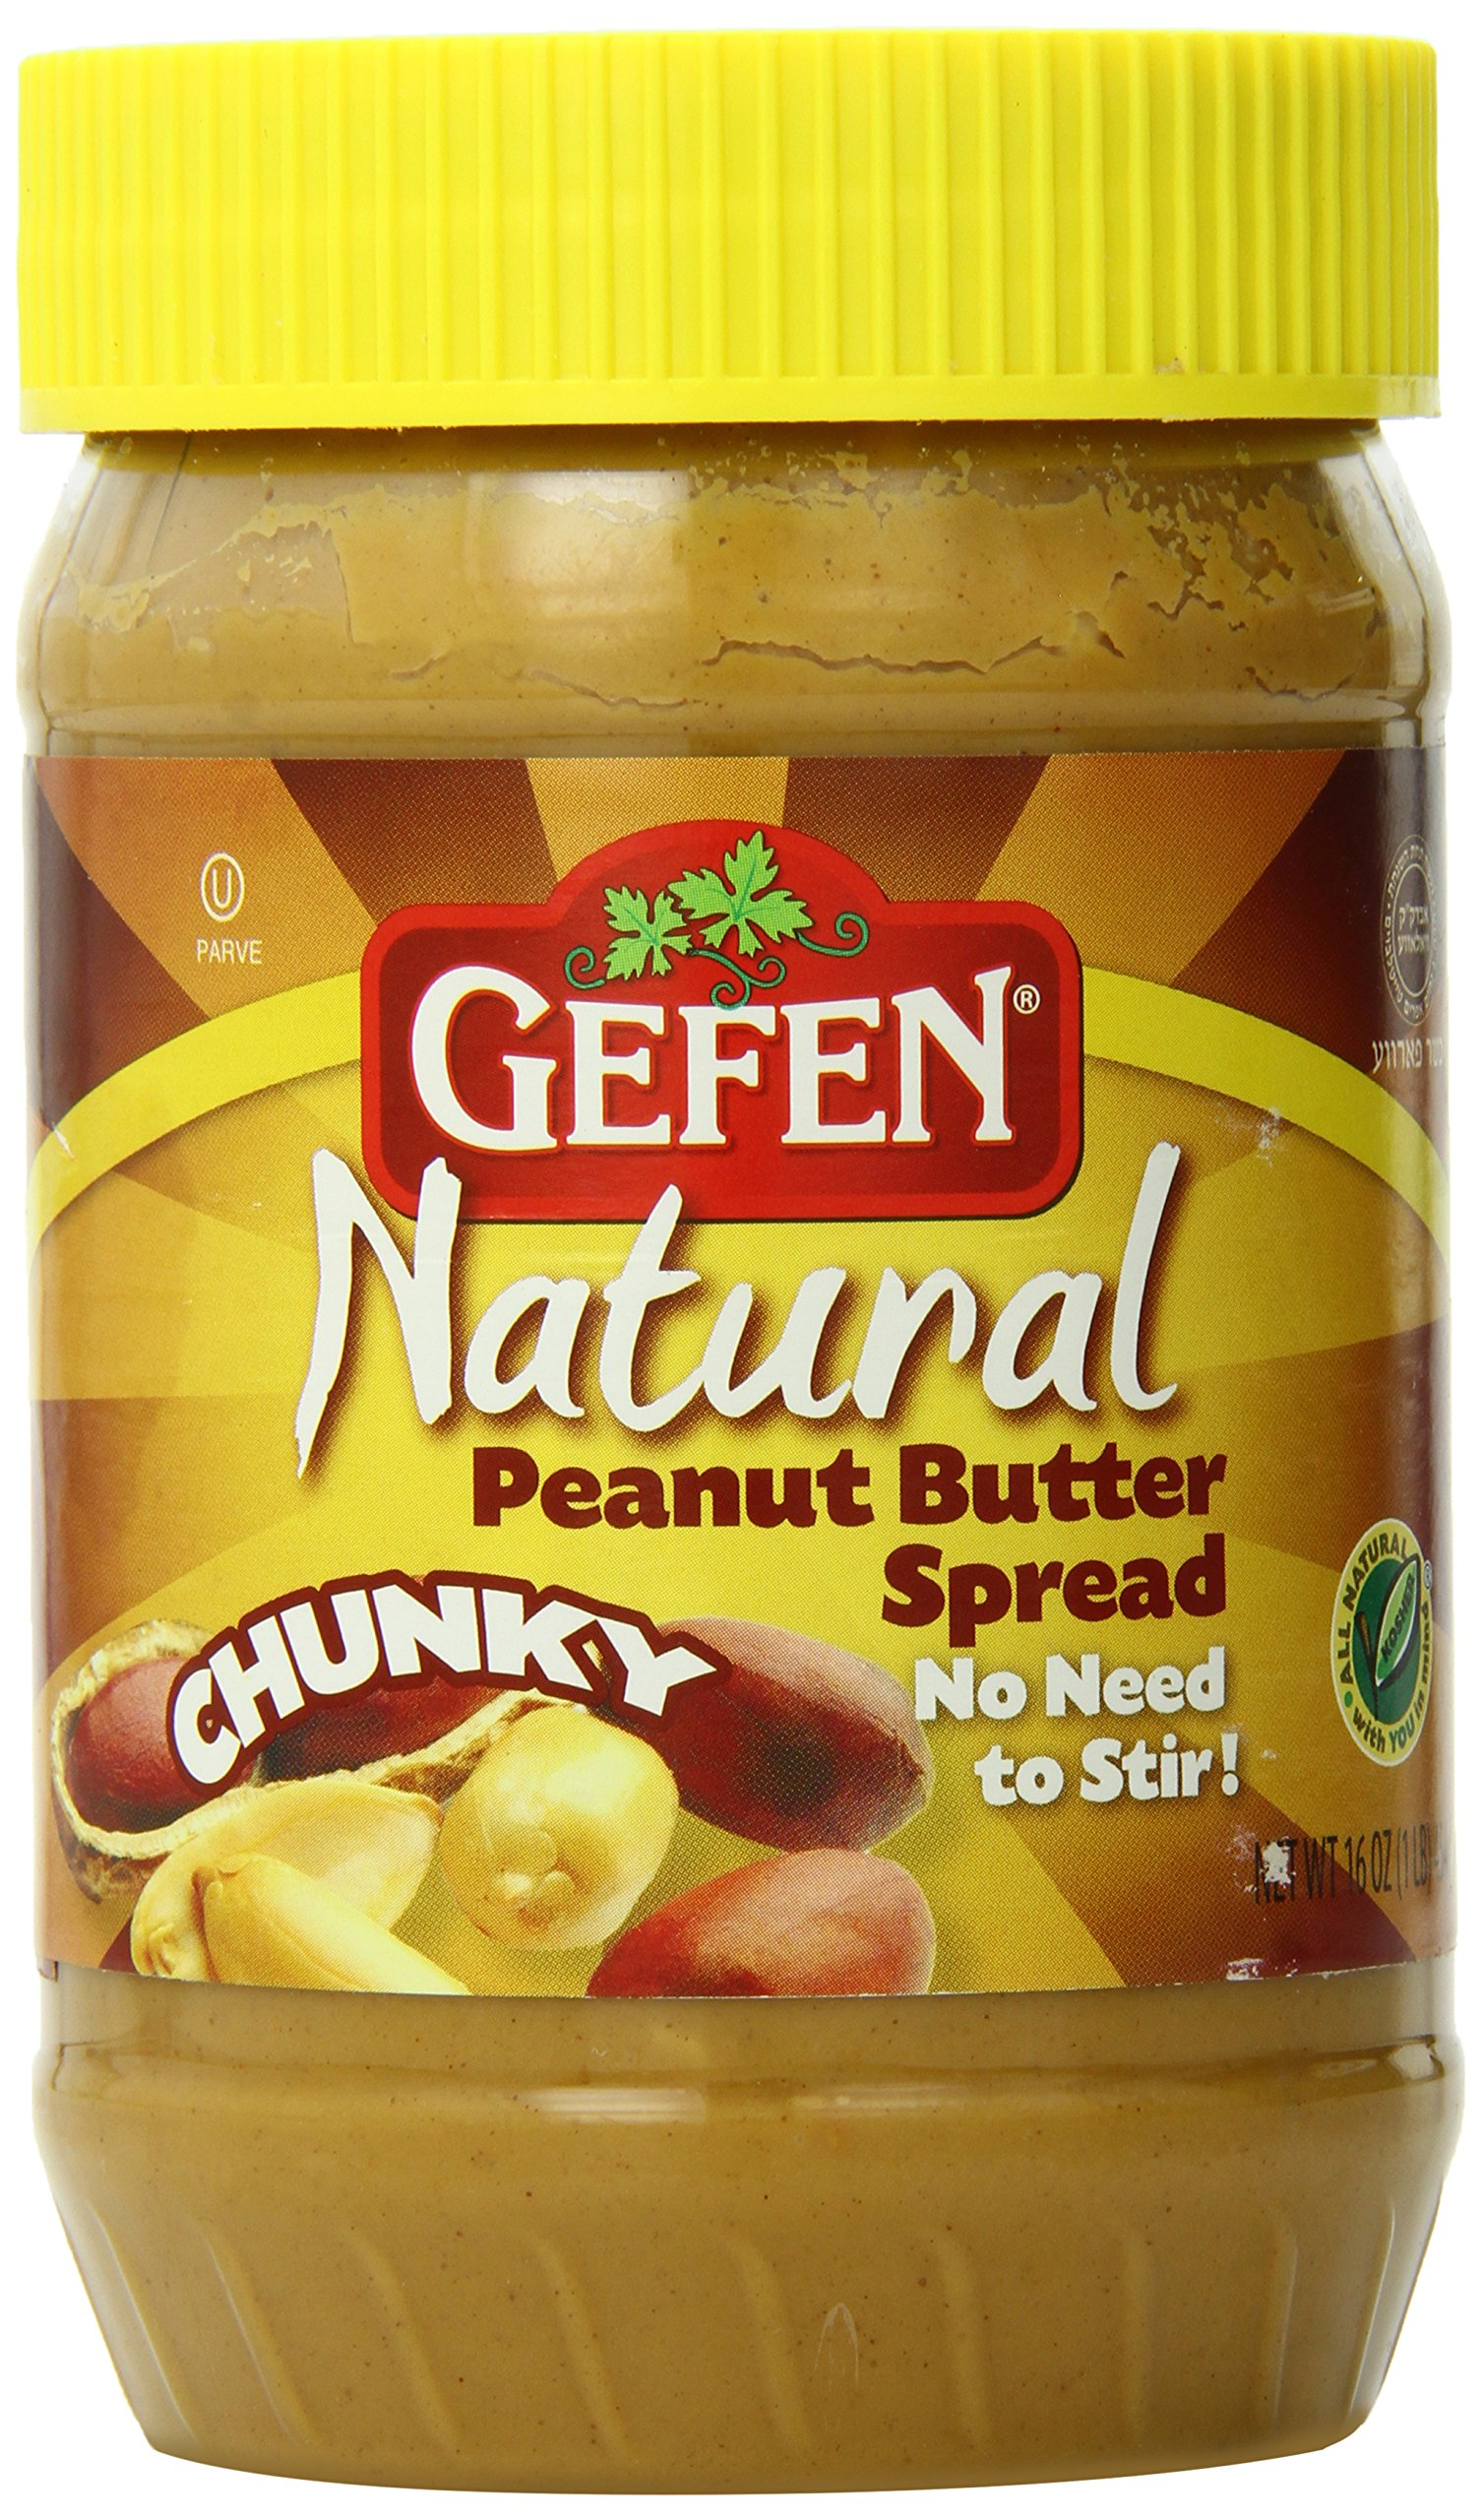 Gefen All Natural Peanut Butter, Chunky, 16 Ounce by Gefen (Image #1)